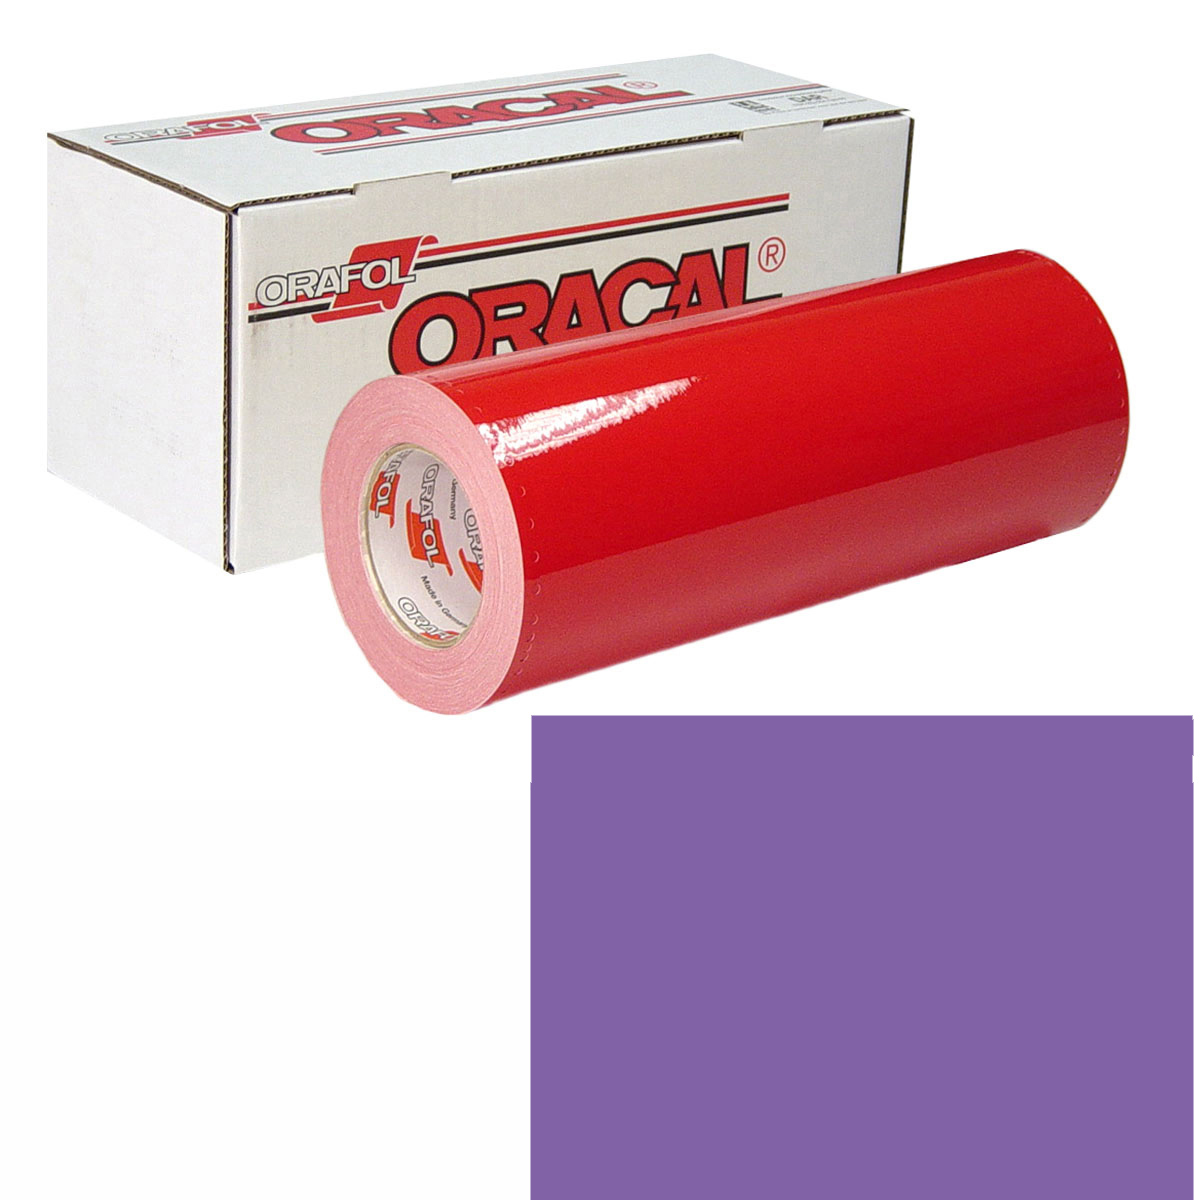 ORACAL 951 15in X 50yd 043 Lavender